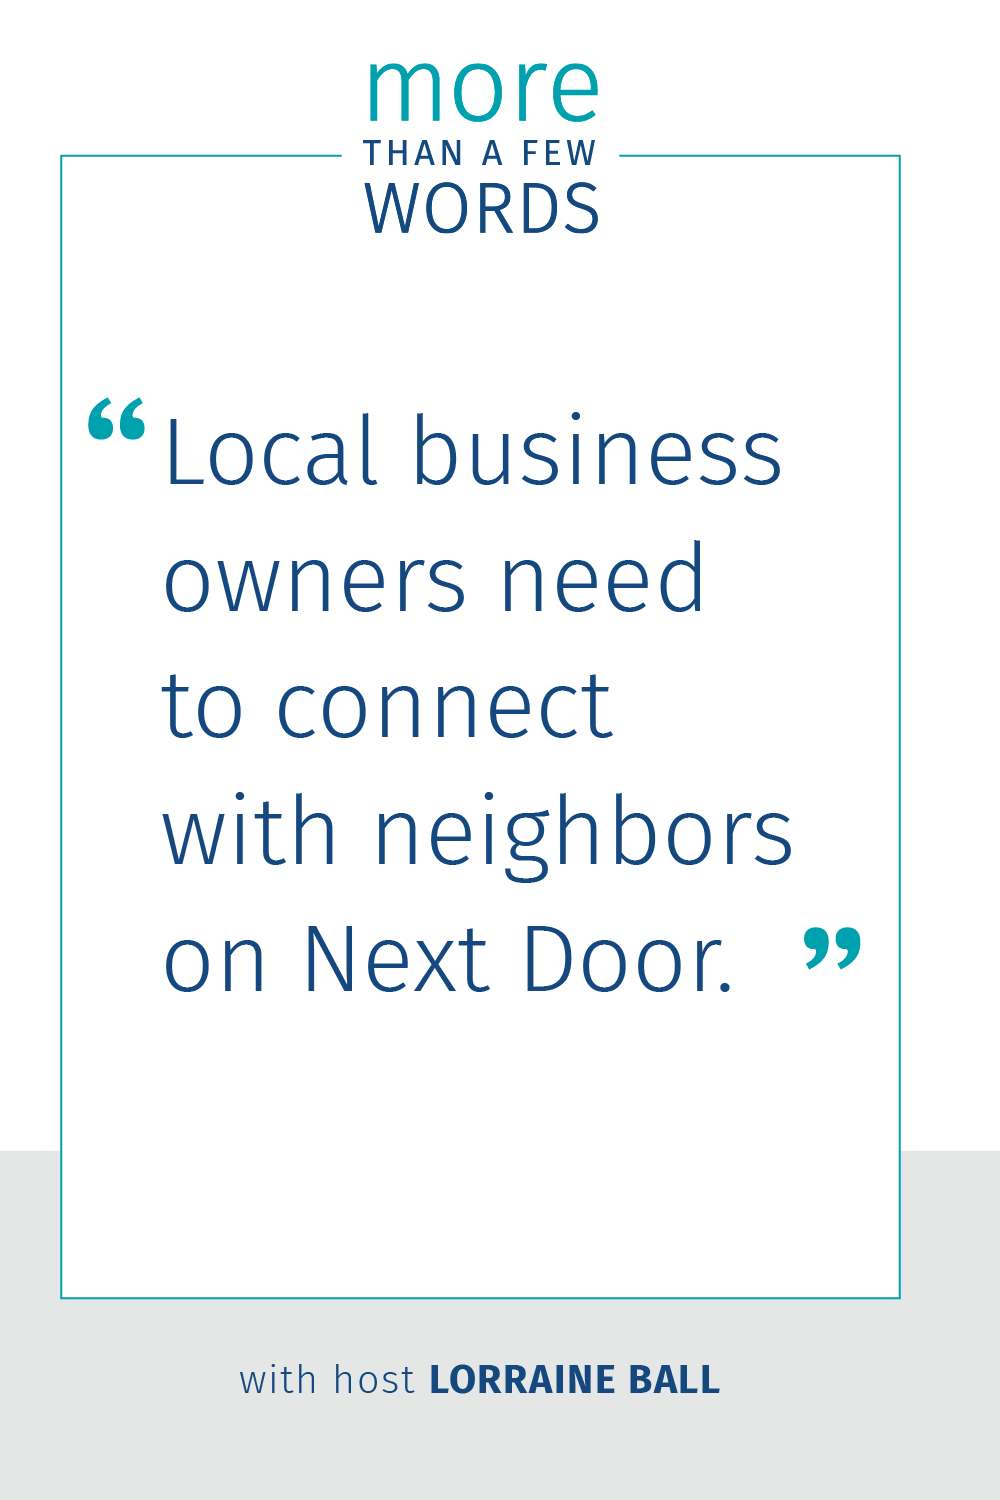 Connect with Neighbors on Next Door